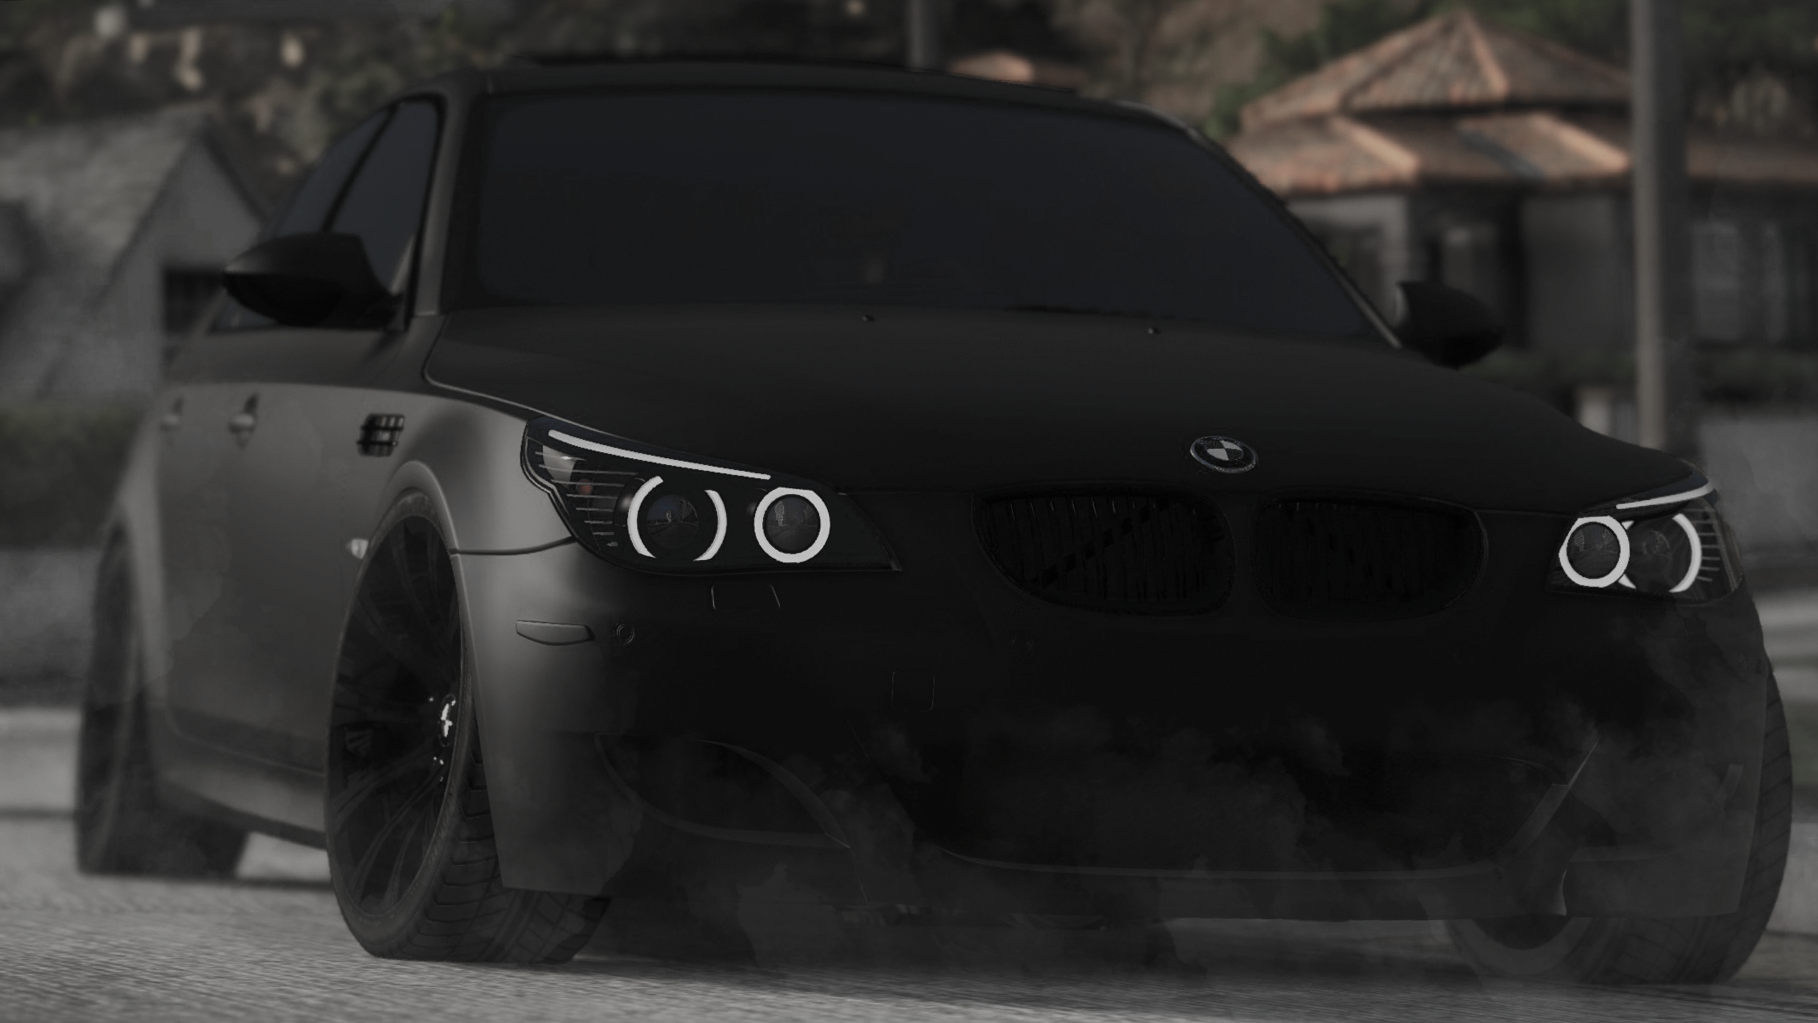 Bmw E60 M5 Add On Tuning Liveries Gta5 Mods Com